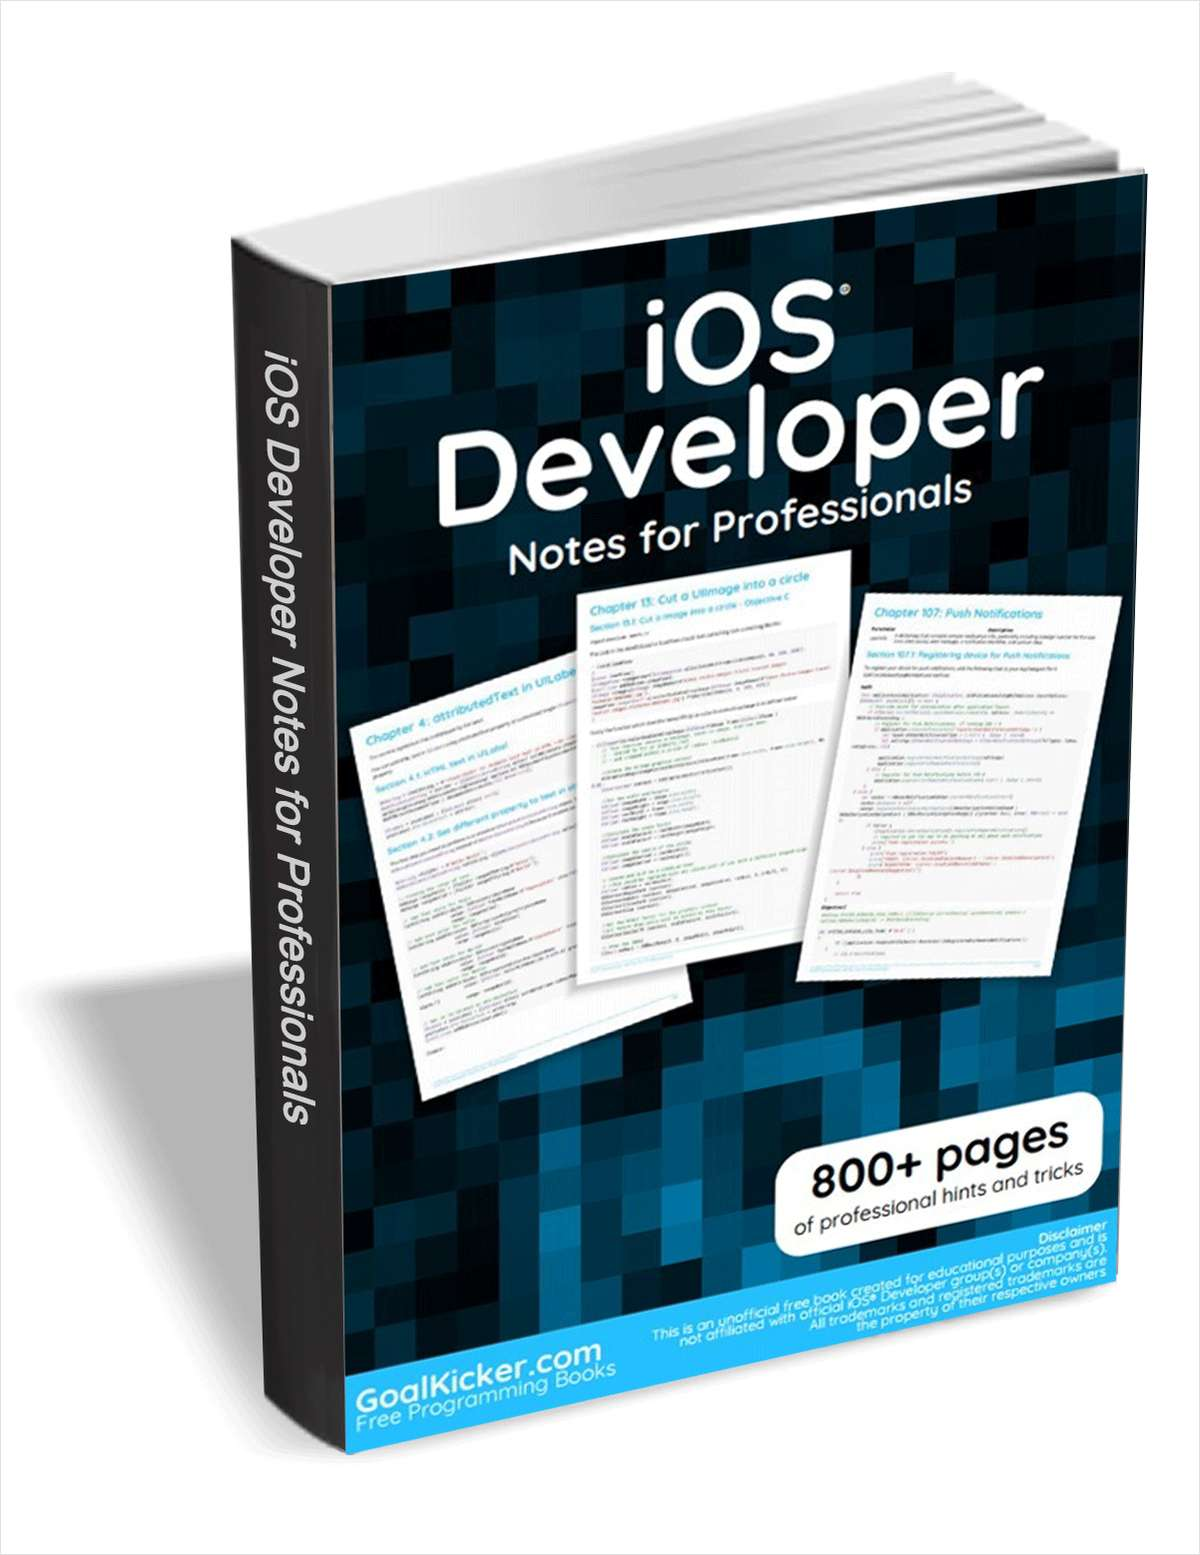 iOS Developer Notes for Professionals